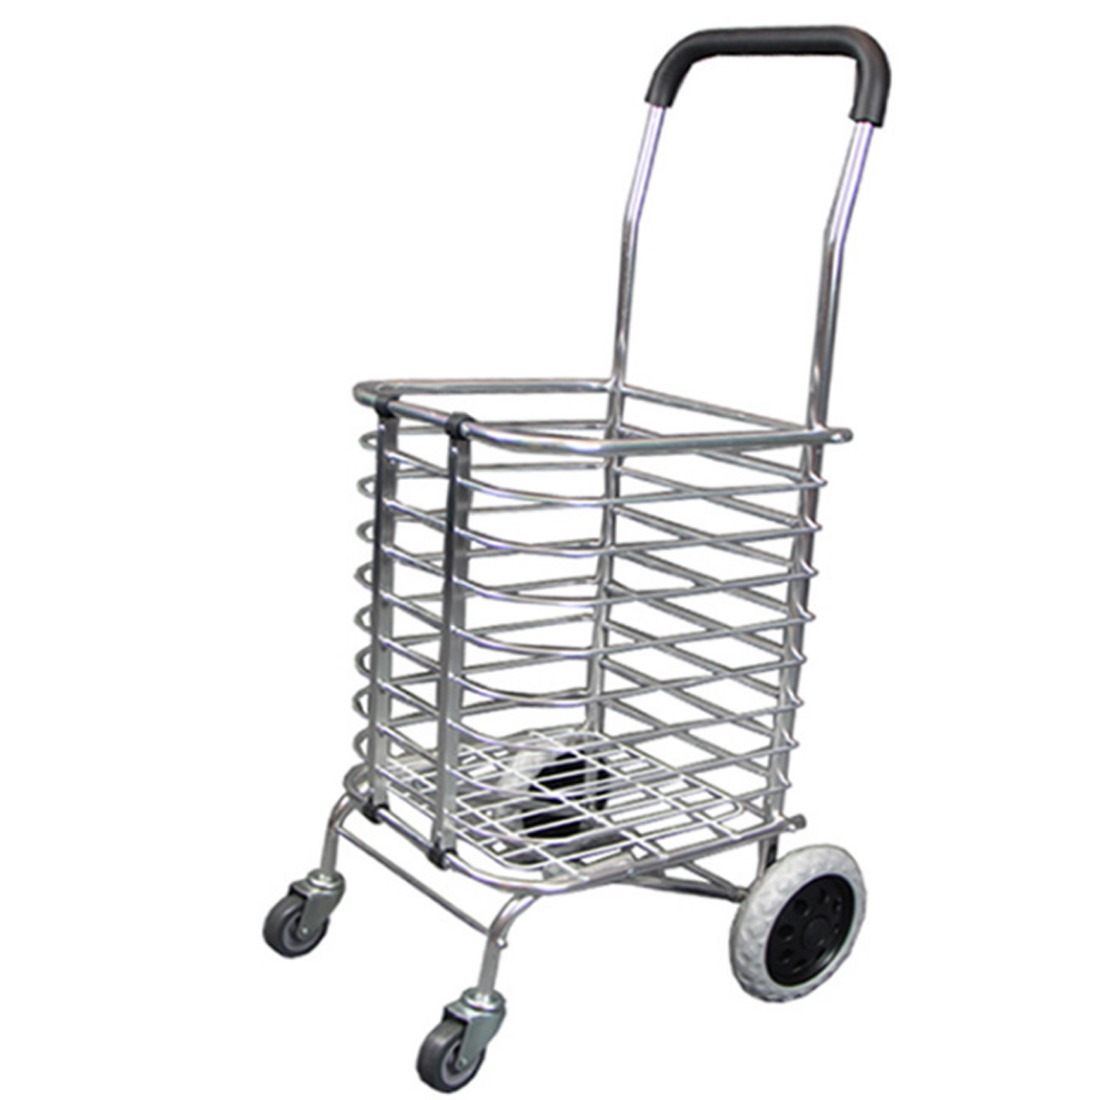 Free Shipping 36L Foldable Portable Trolley Aluminum Alloy Wheel Supermarket Cart Shopping Cart For Adult Shopping Home printed baby child supermarket trolley dining chair protection antibacterial safety travel portable shopping cart cushion